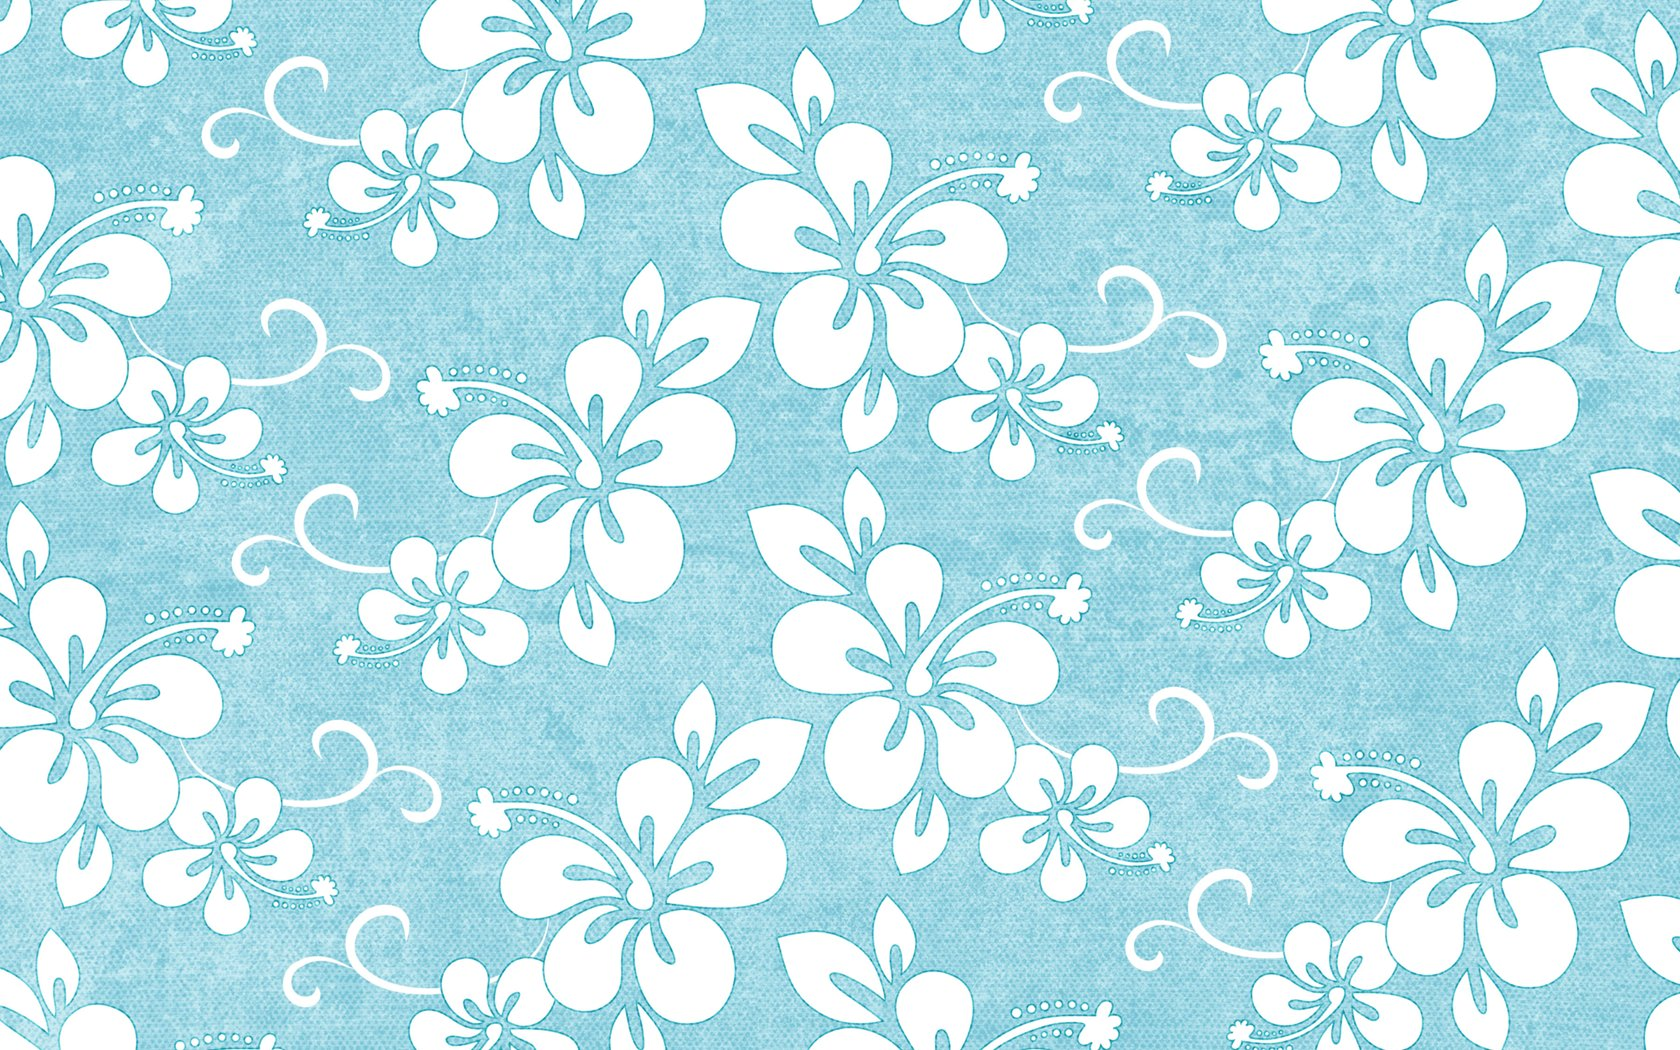 Paper Backgrounds and Textures Pictures, Wallpaper Texture Background ...